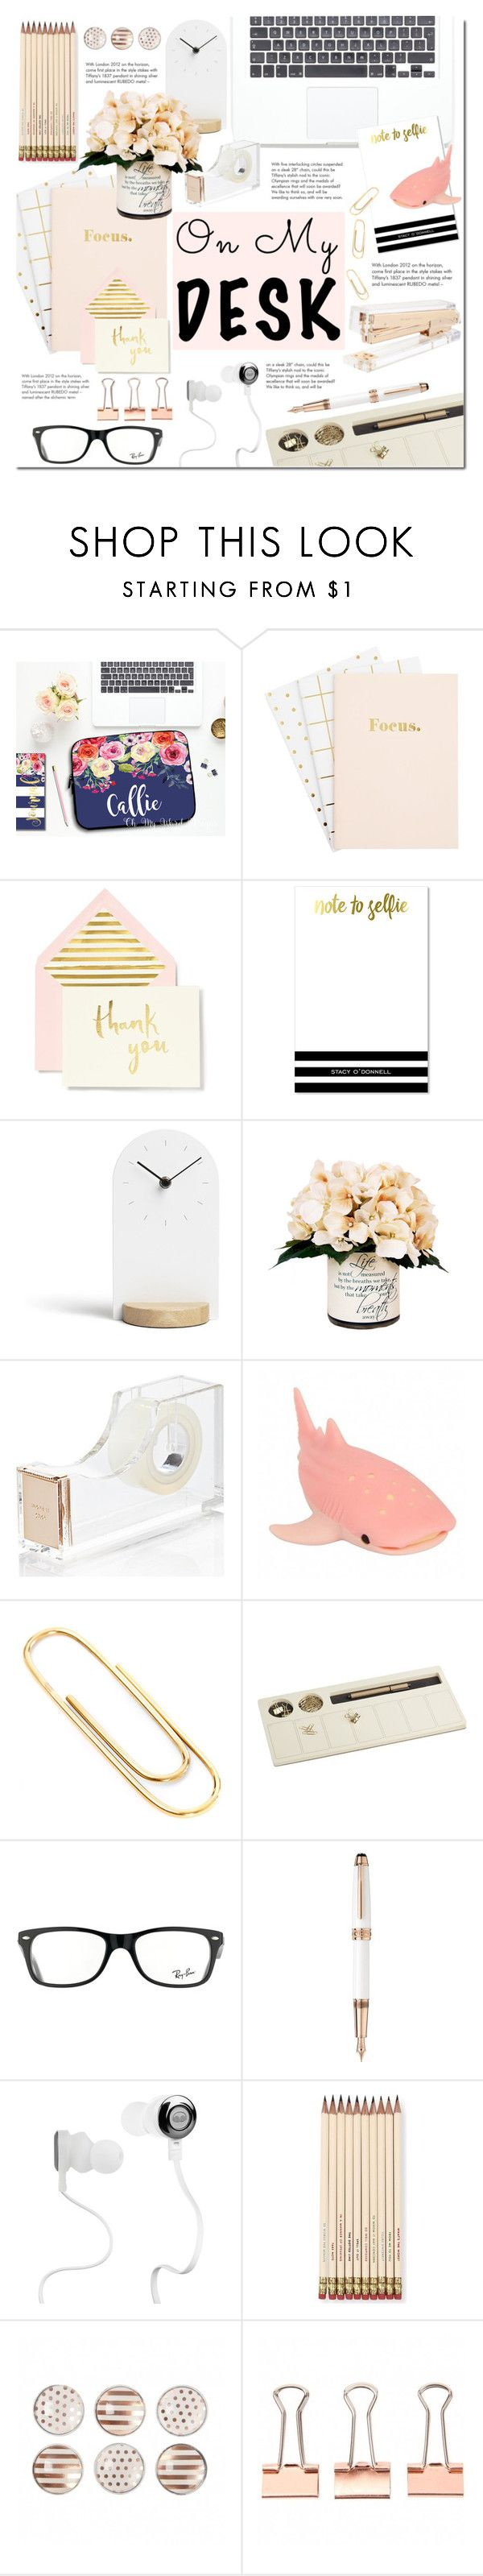 """""""On my desk"""" by mada-malureanu on Polyvore featuring interior, interiors, interior design, home, home decor, interior decorating, Kate Spade, Umbra, Creative Displays and Tiffany & Co."""